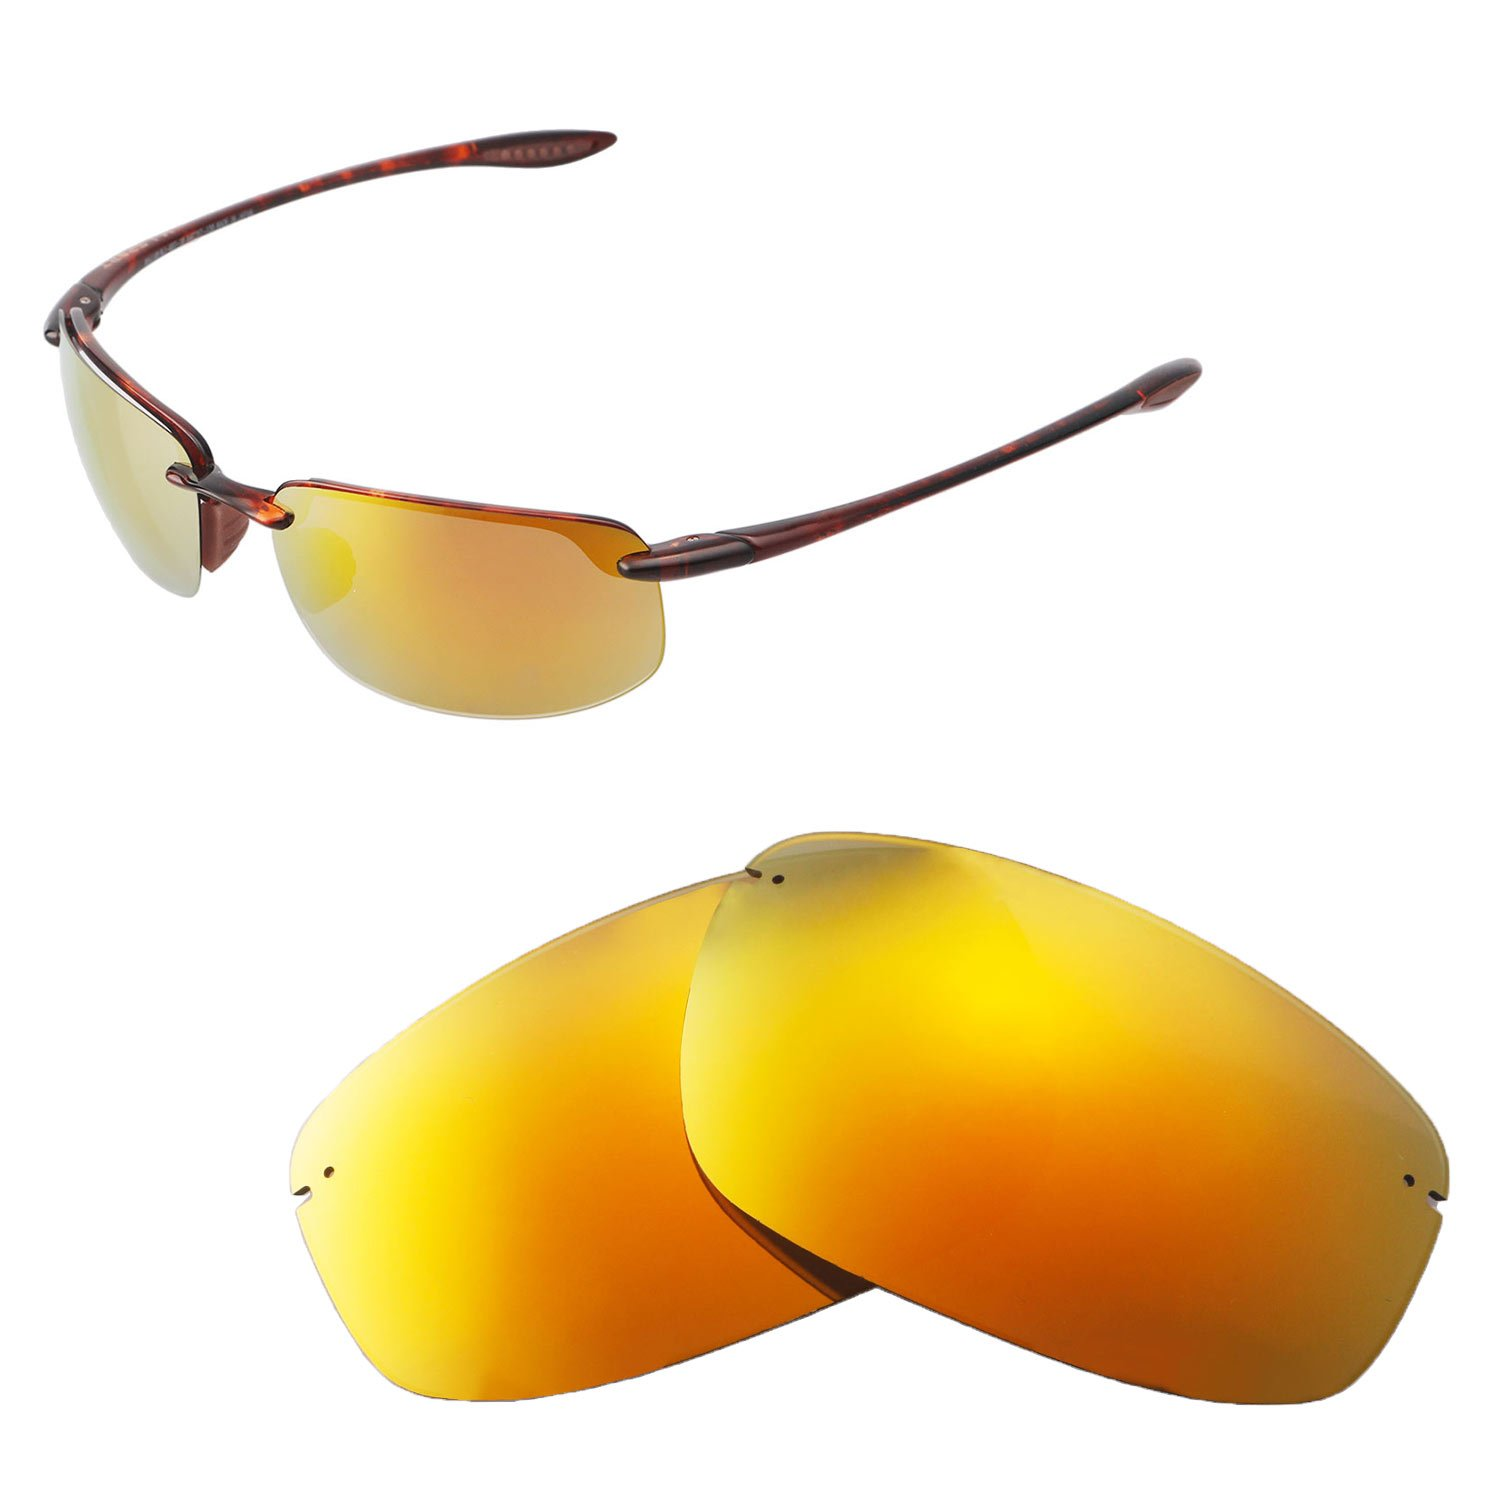 Walleva Replacement Lenses for Maui Jim Ho'okipa Sunglasses - Multiple Options Available (24K Gold - Polarized)